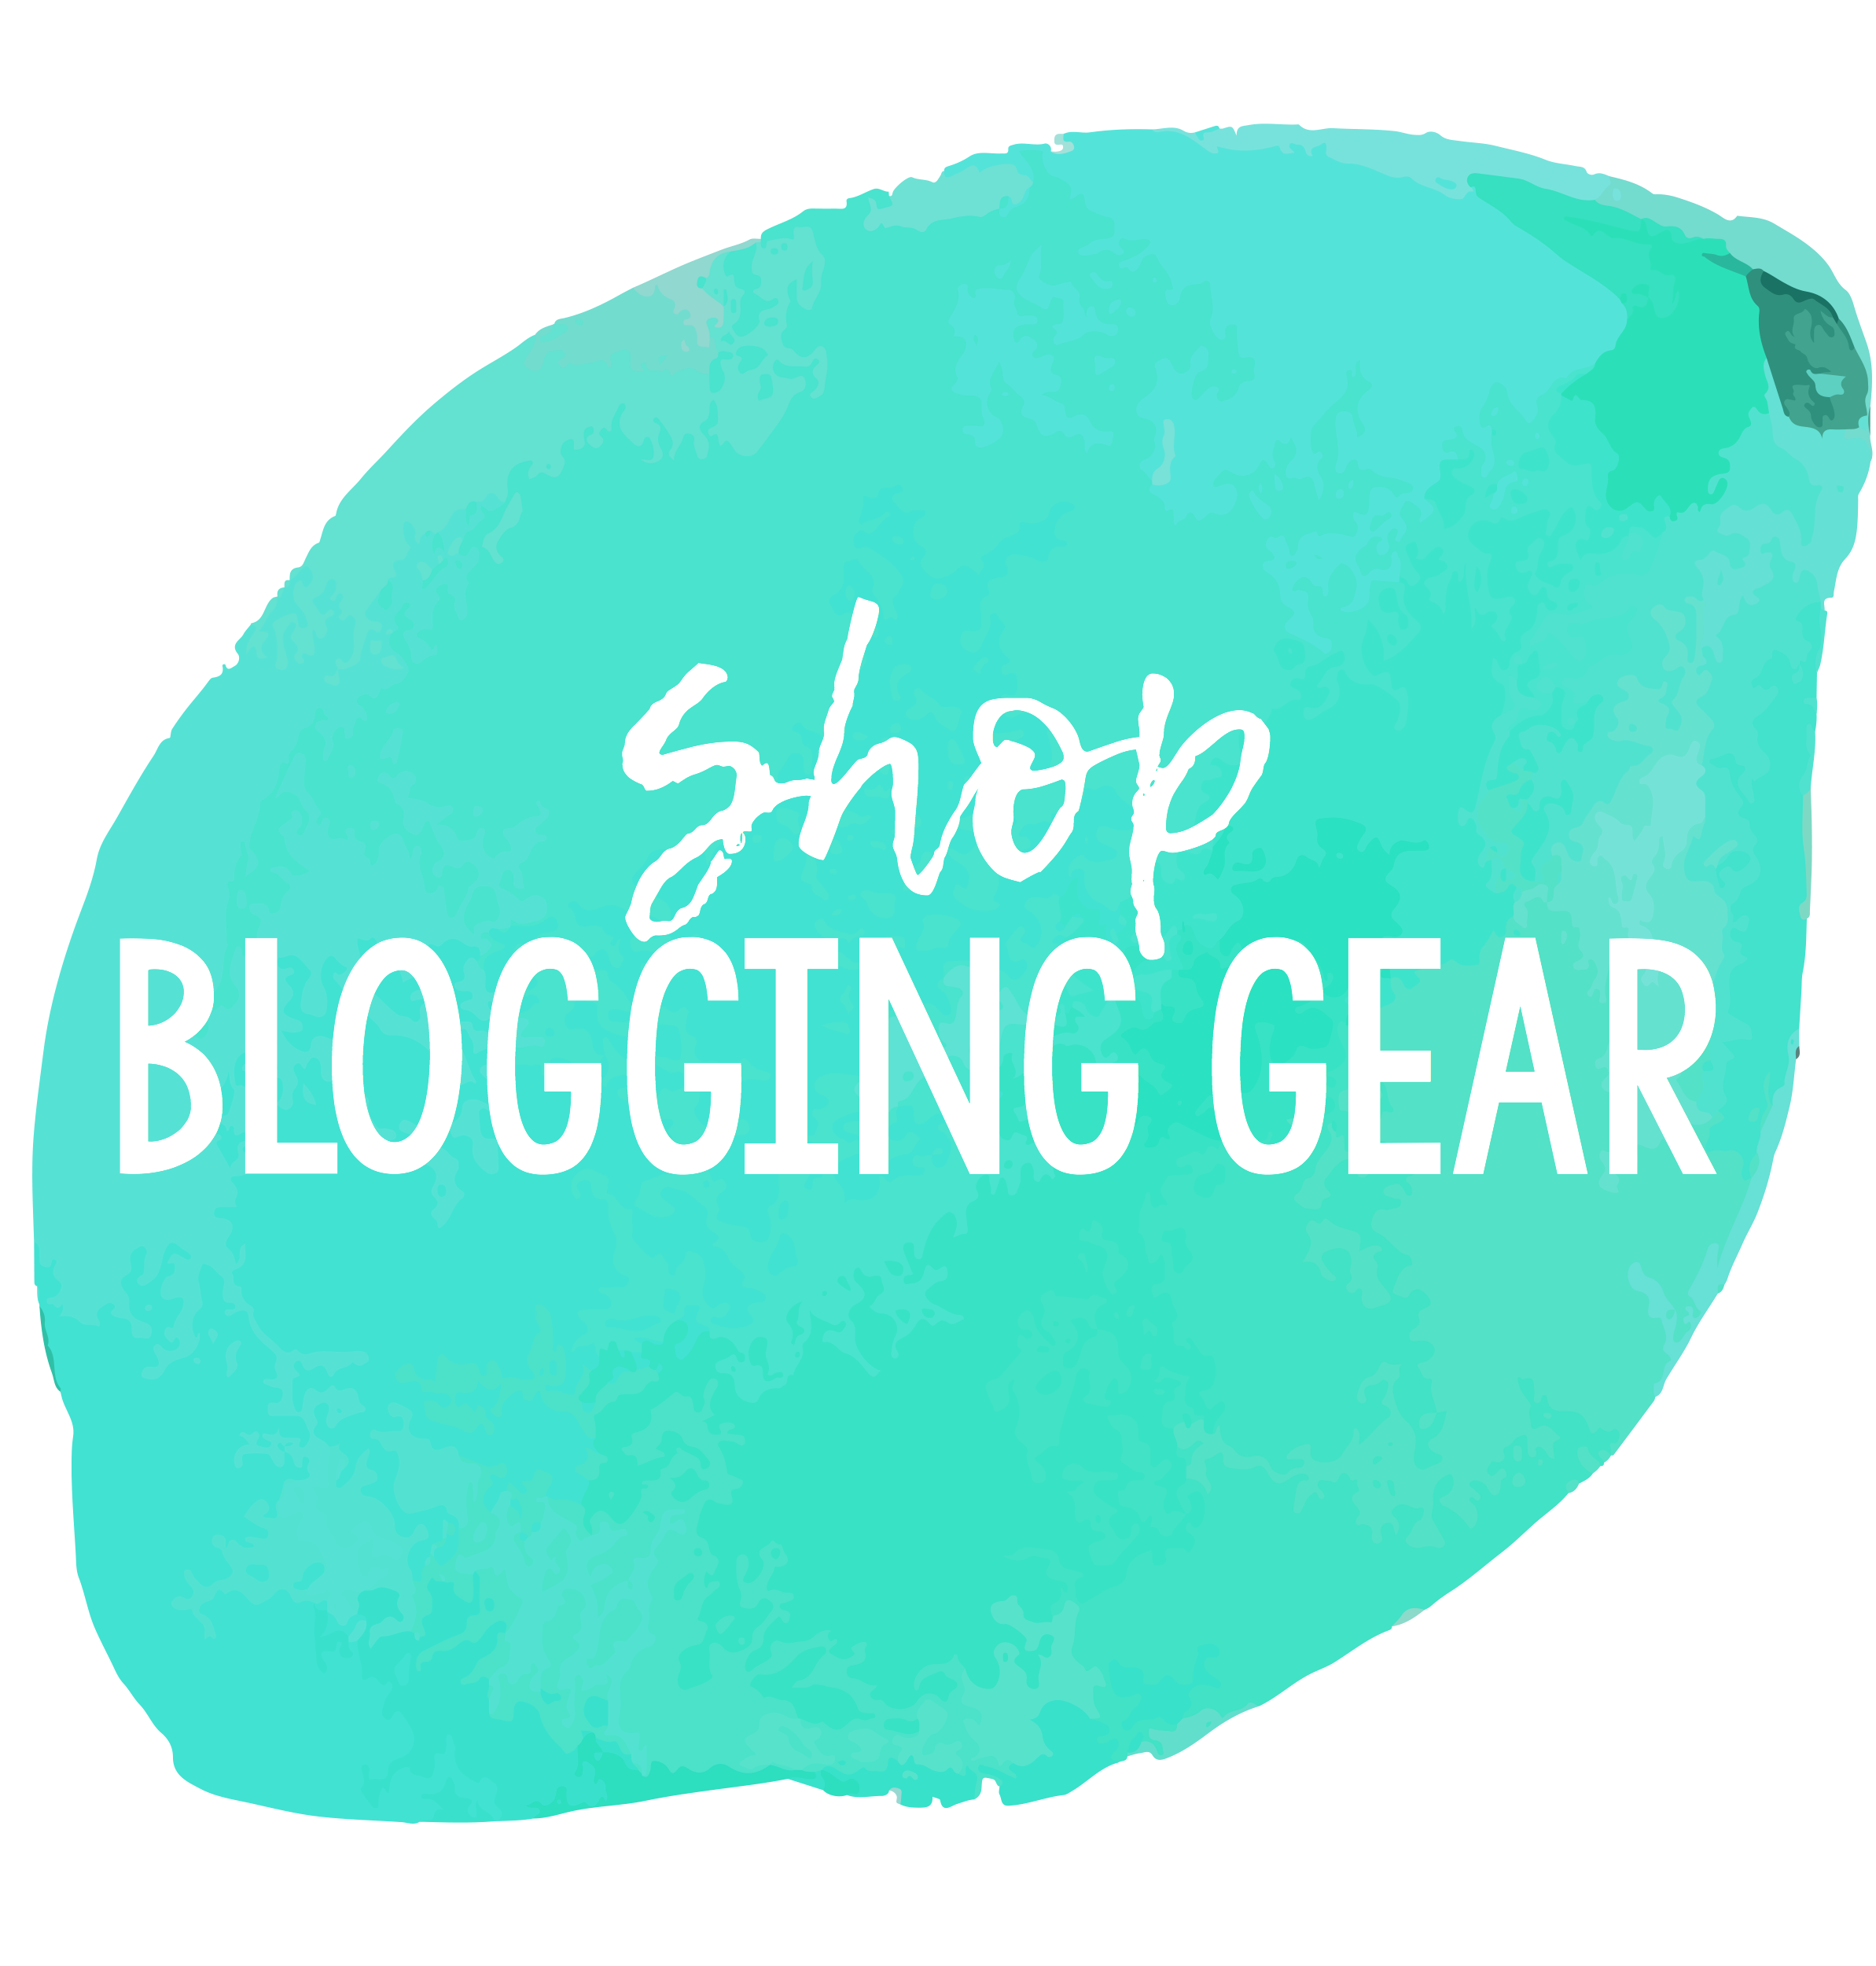 shop my blogging gear